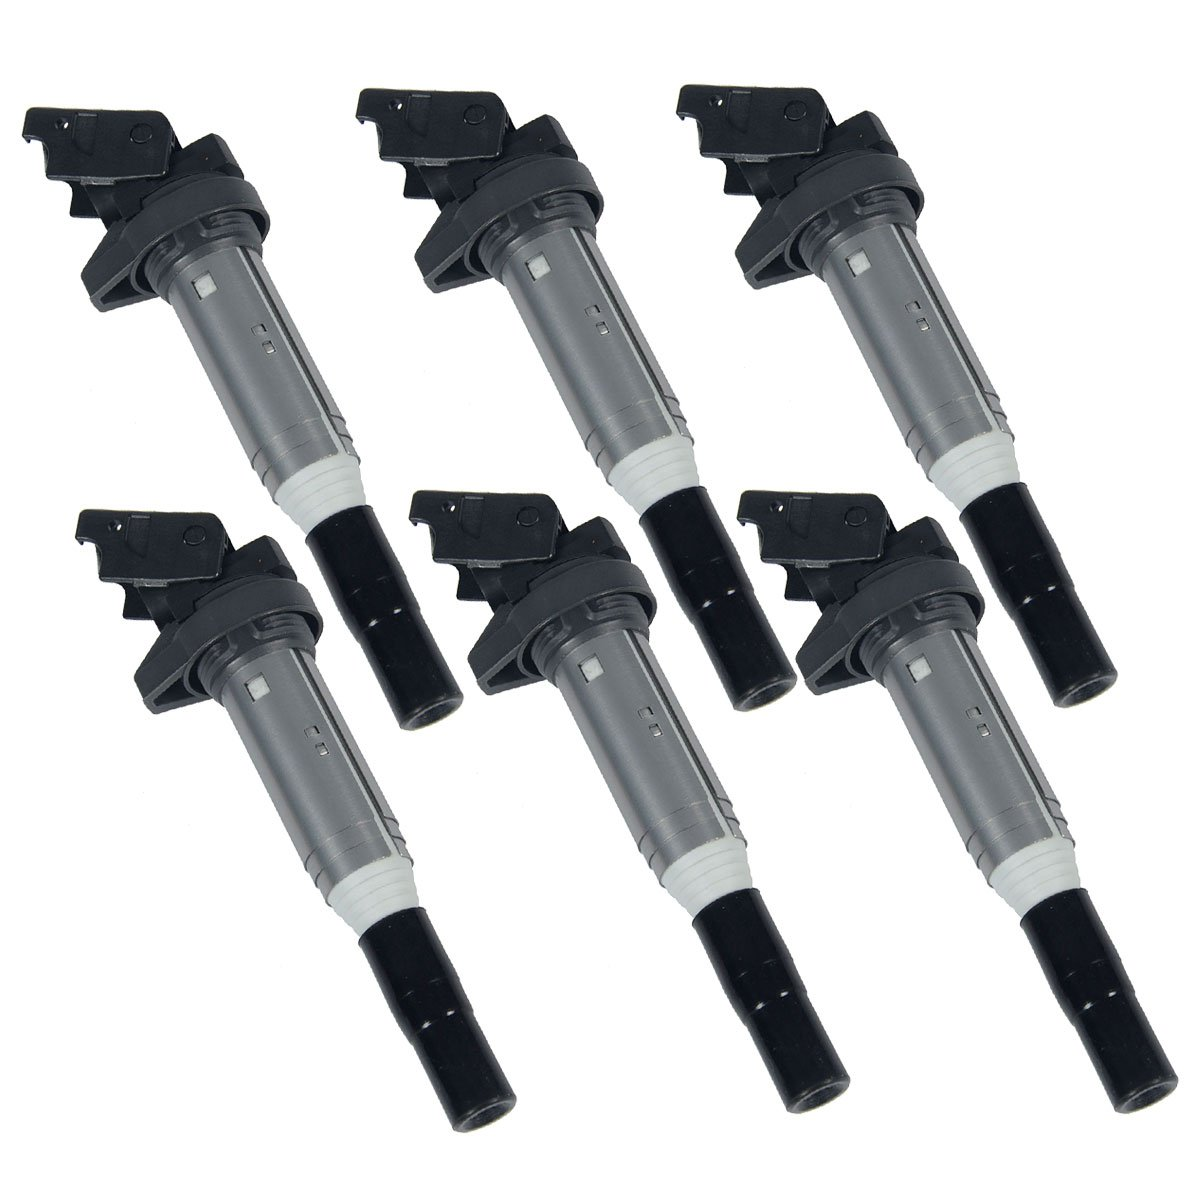 Set of 6 Ignition Coils Pack for BMW E60 E61 E70 E71 E82 E88 E90 E91 E93 F10 F25 F30 E85 E89 Mini Cooper